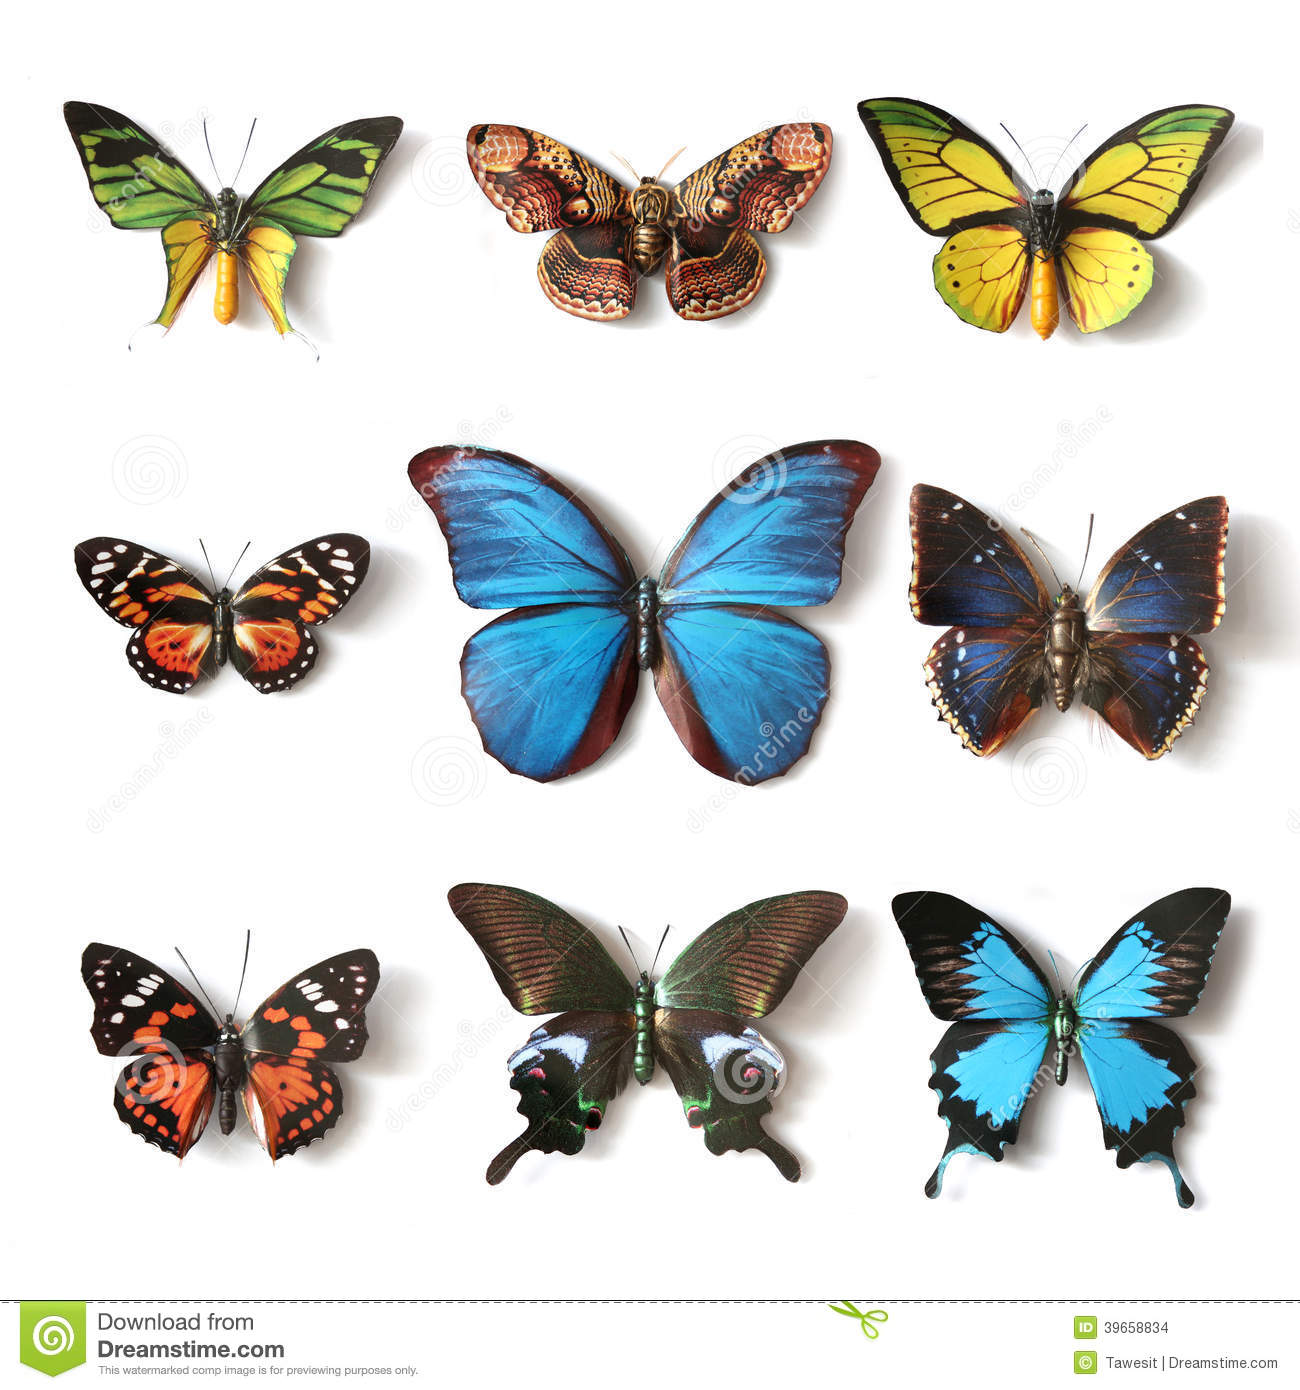 Collection bourr e de papillon d 39 insectes photo stock - Images de papillons gratuites ...